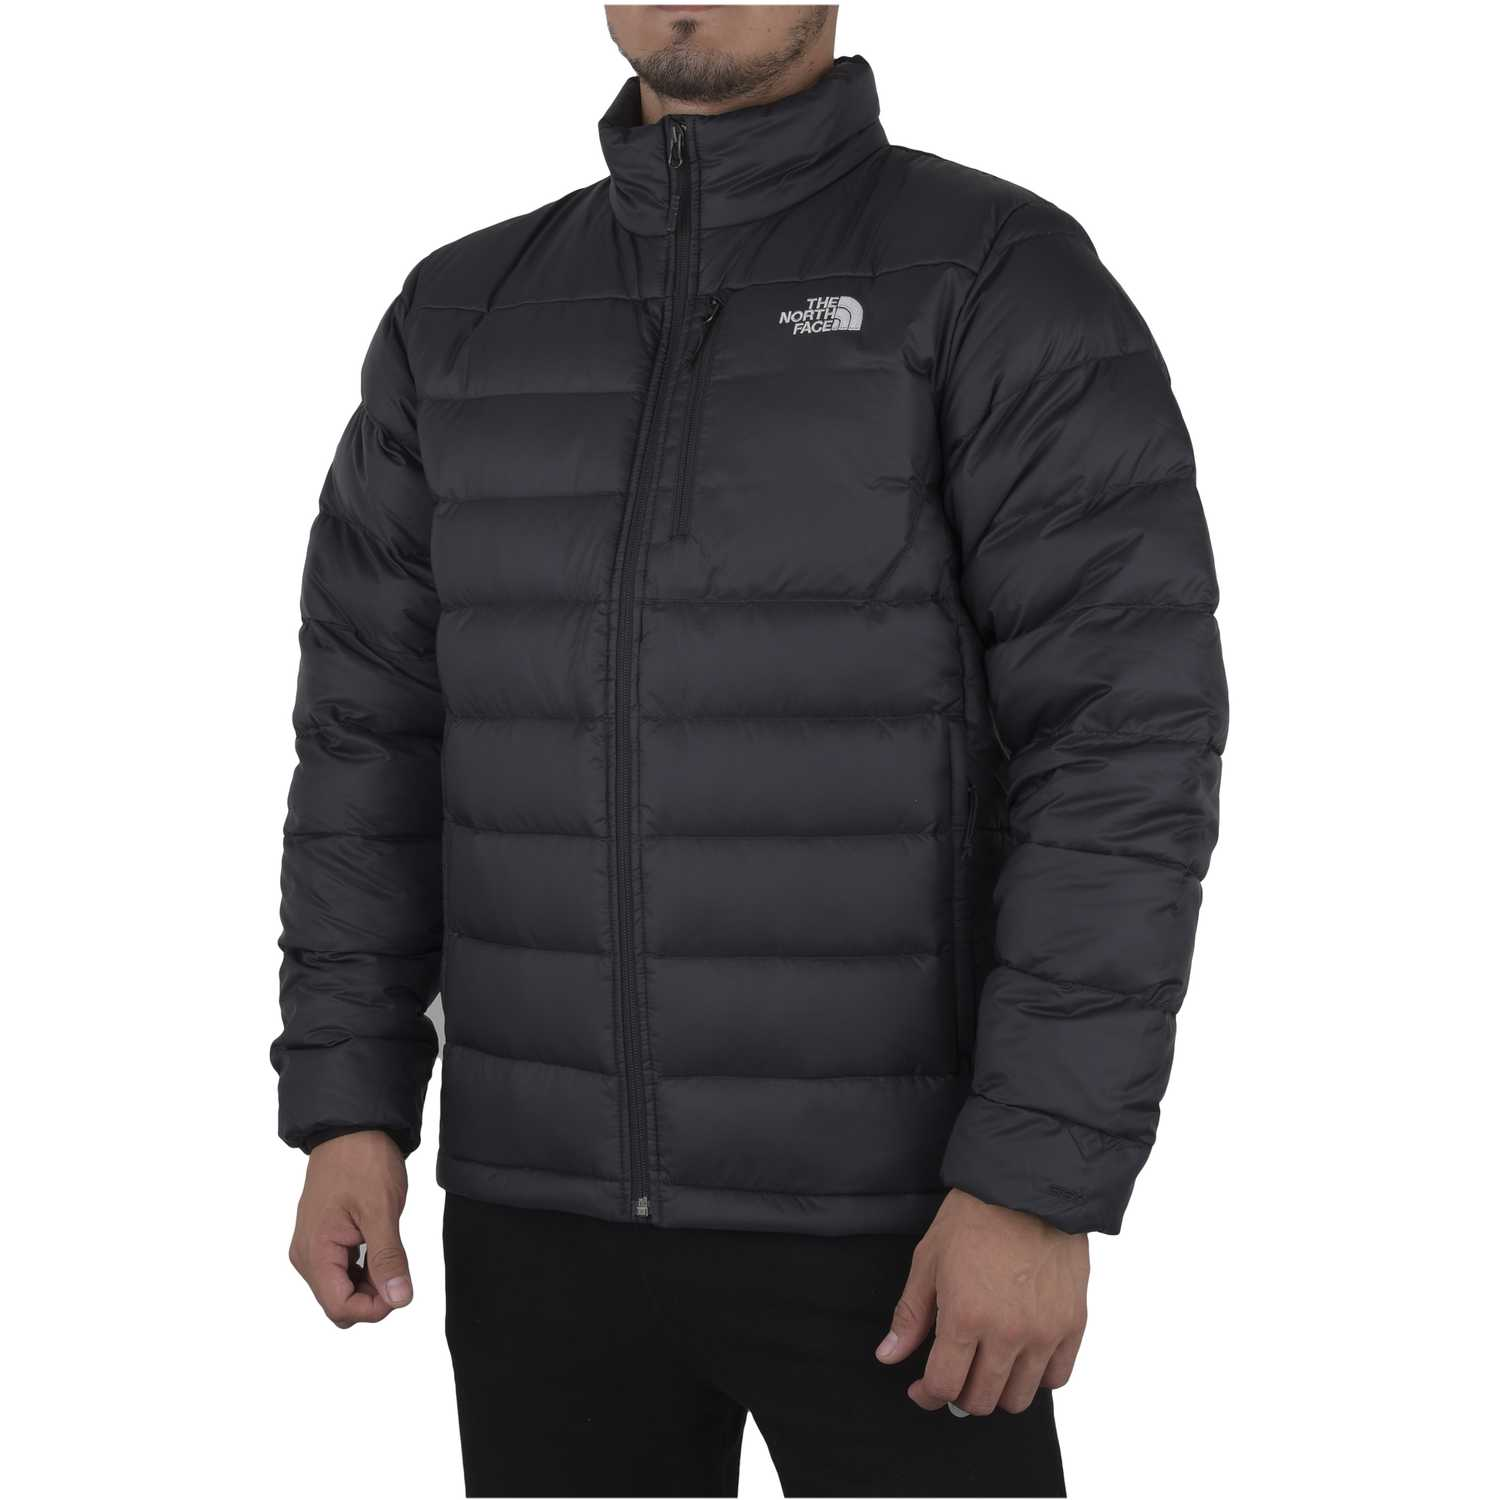 Casacas de Hombre The North Face Negro m aconcagua jacket